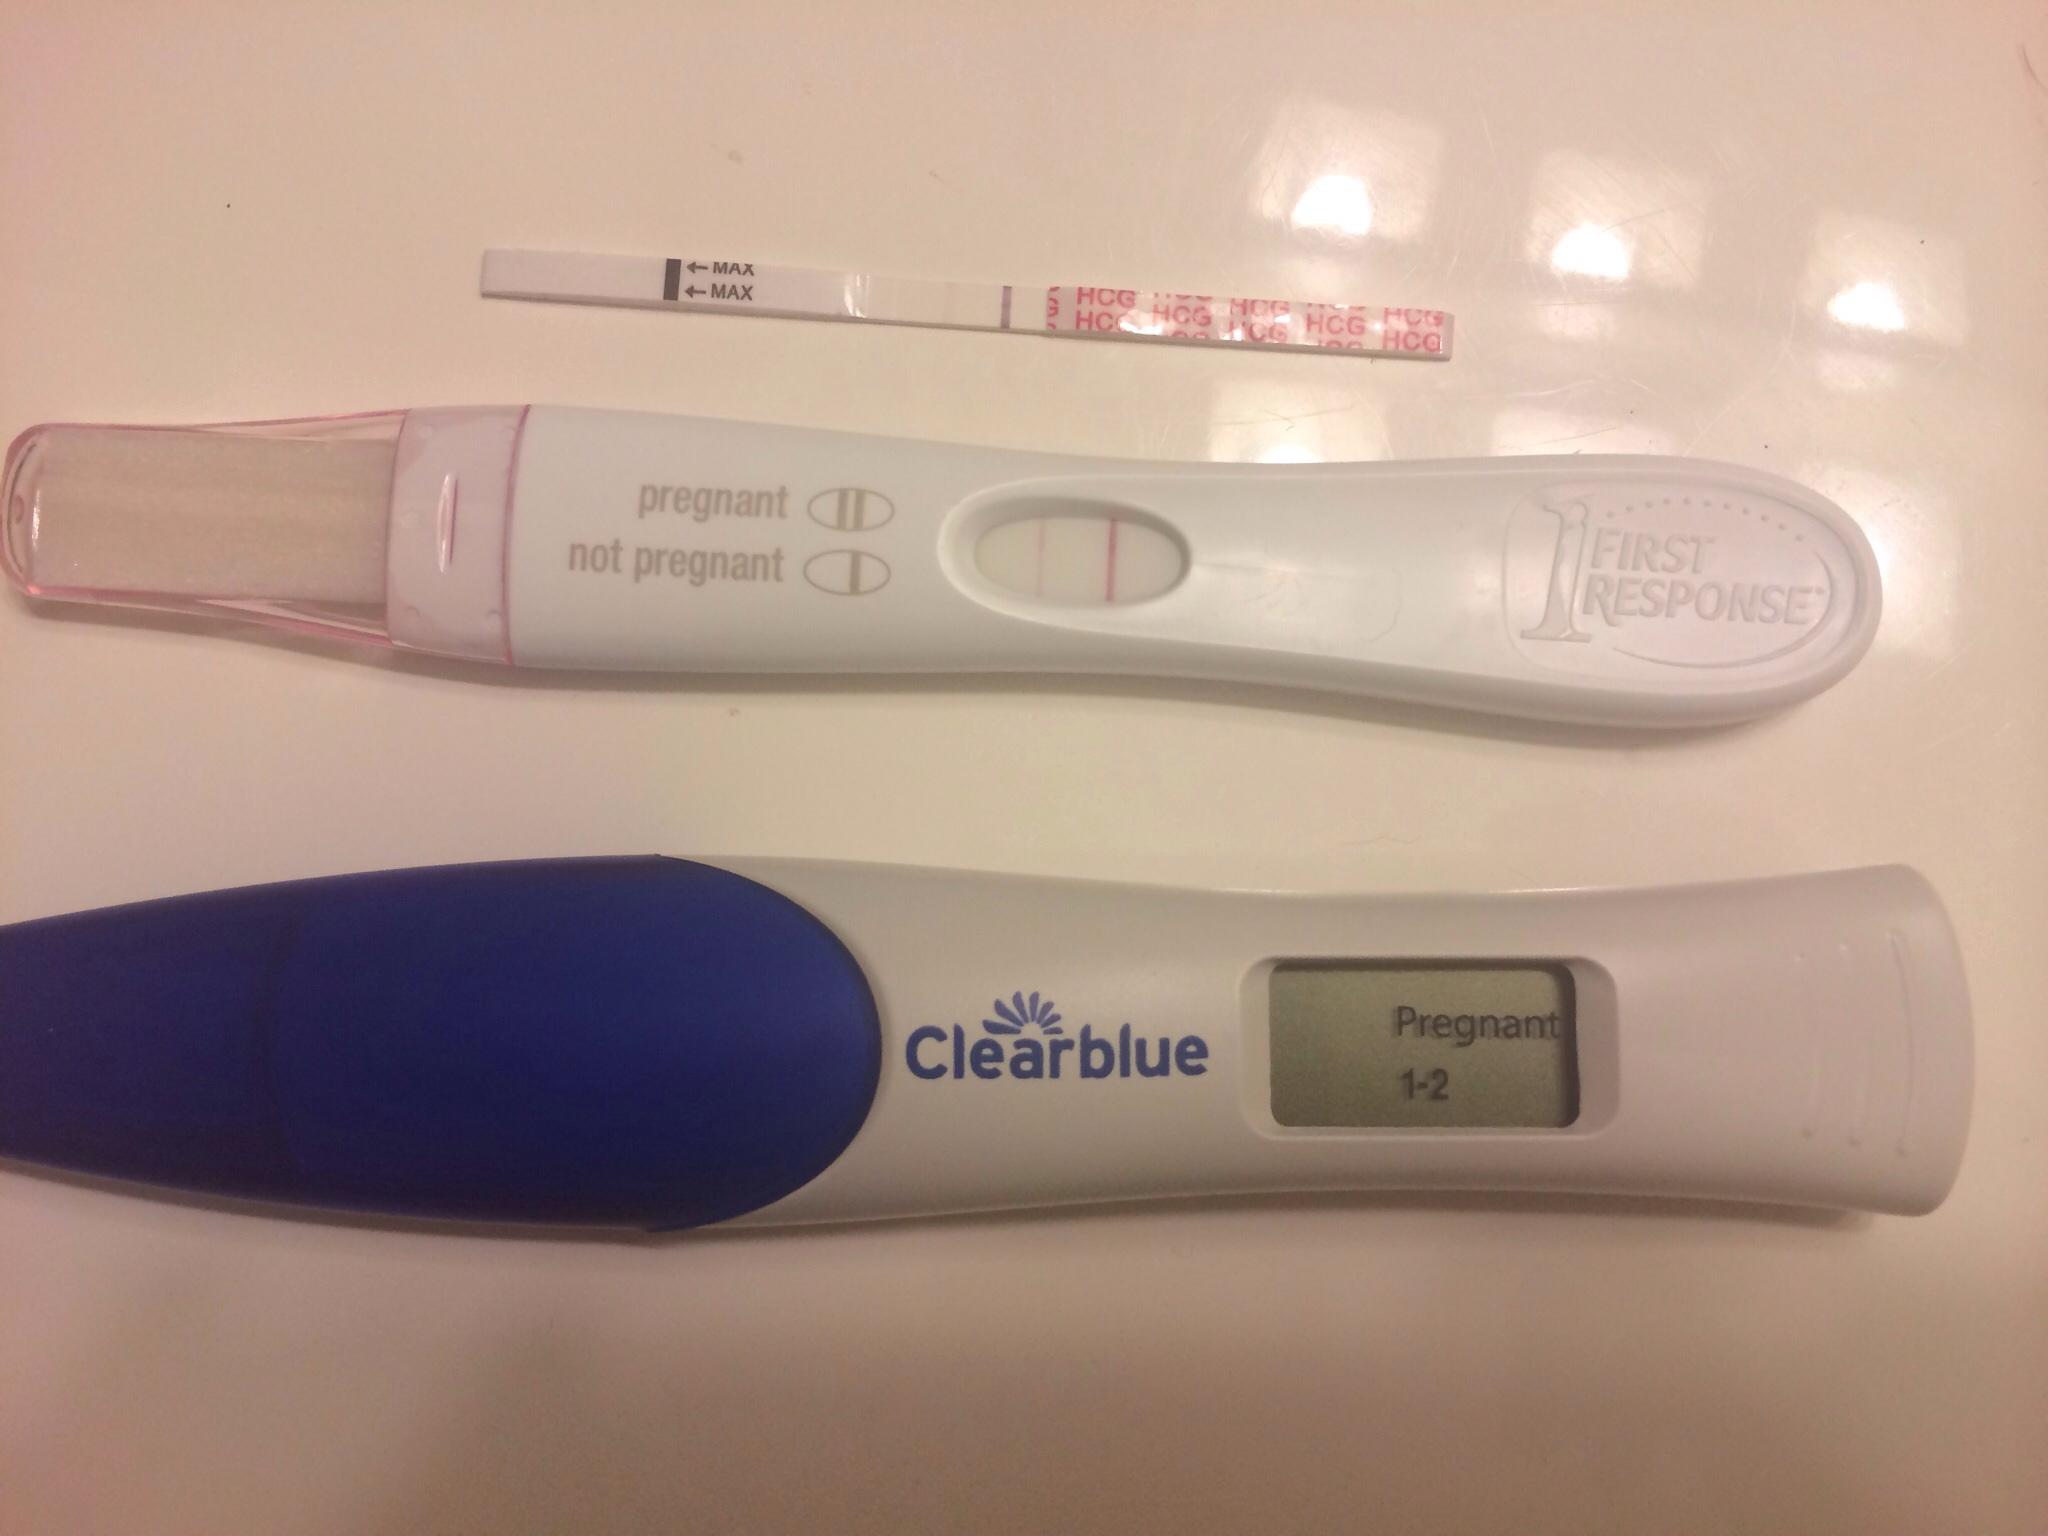 10 Dpo Clearblue Digital - Digital Photos and Descriptions Magimages Org